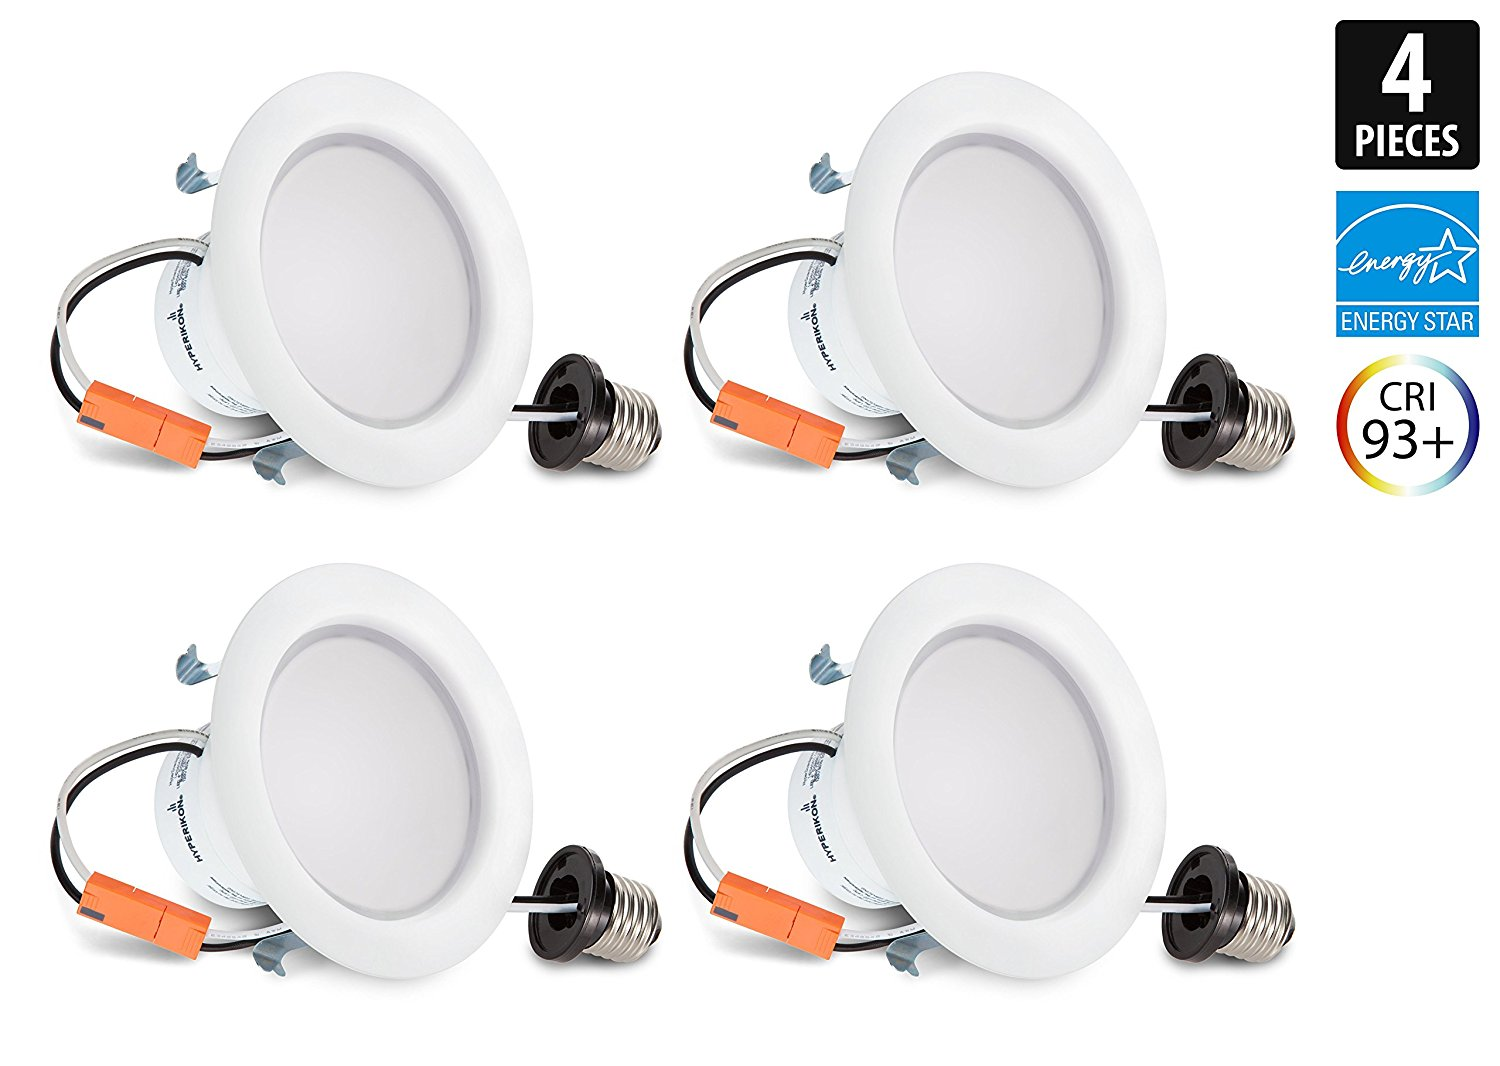 Hyperikon 4 Inch LED Downlight 9W (65W Equivalent), 4000K (Daylight Glow), Dimmable, CRI94, Retrofit LED Recessed Fixture, ENERGY STAR & UL-Listed - Great for Bathroom, Kitchen, Office - (4 Pack)